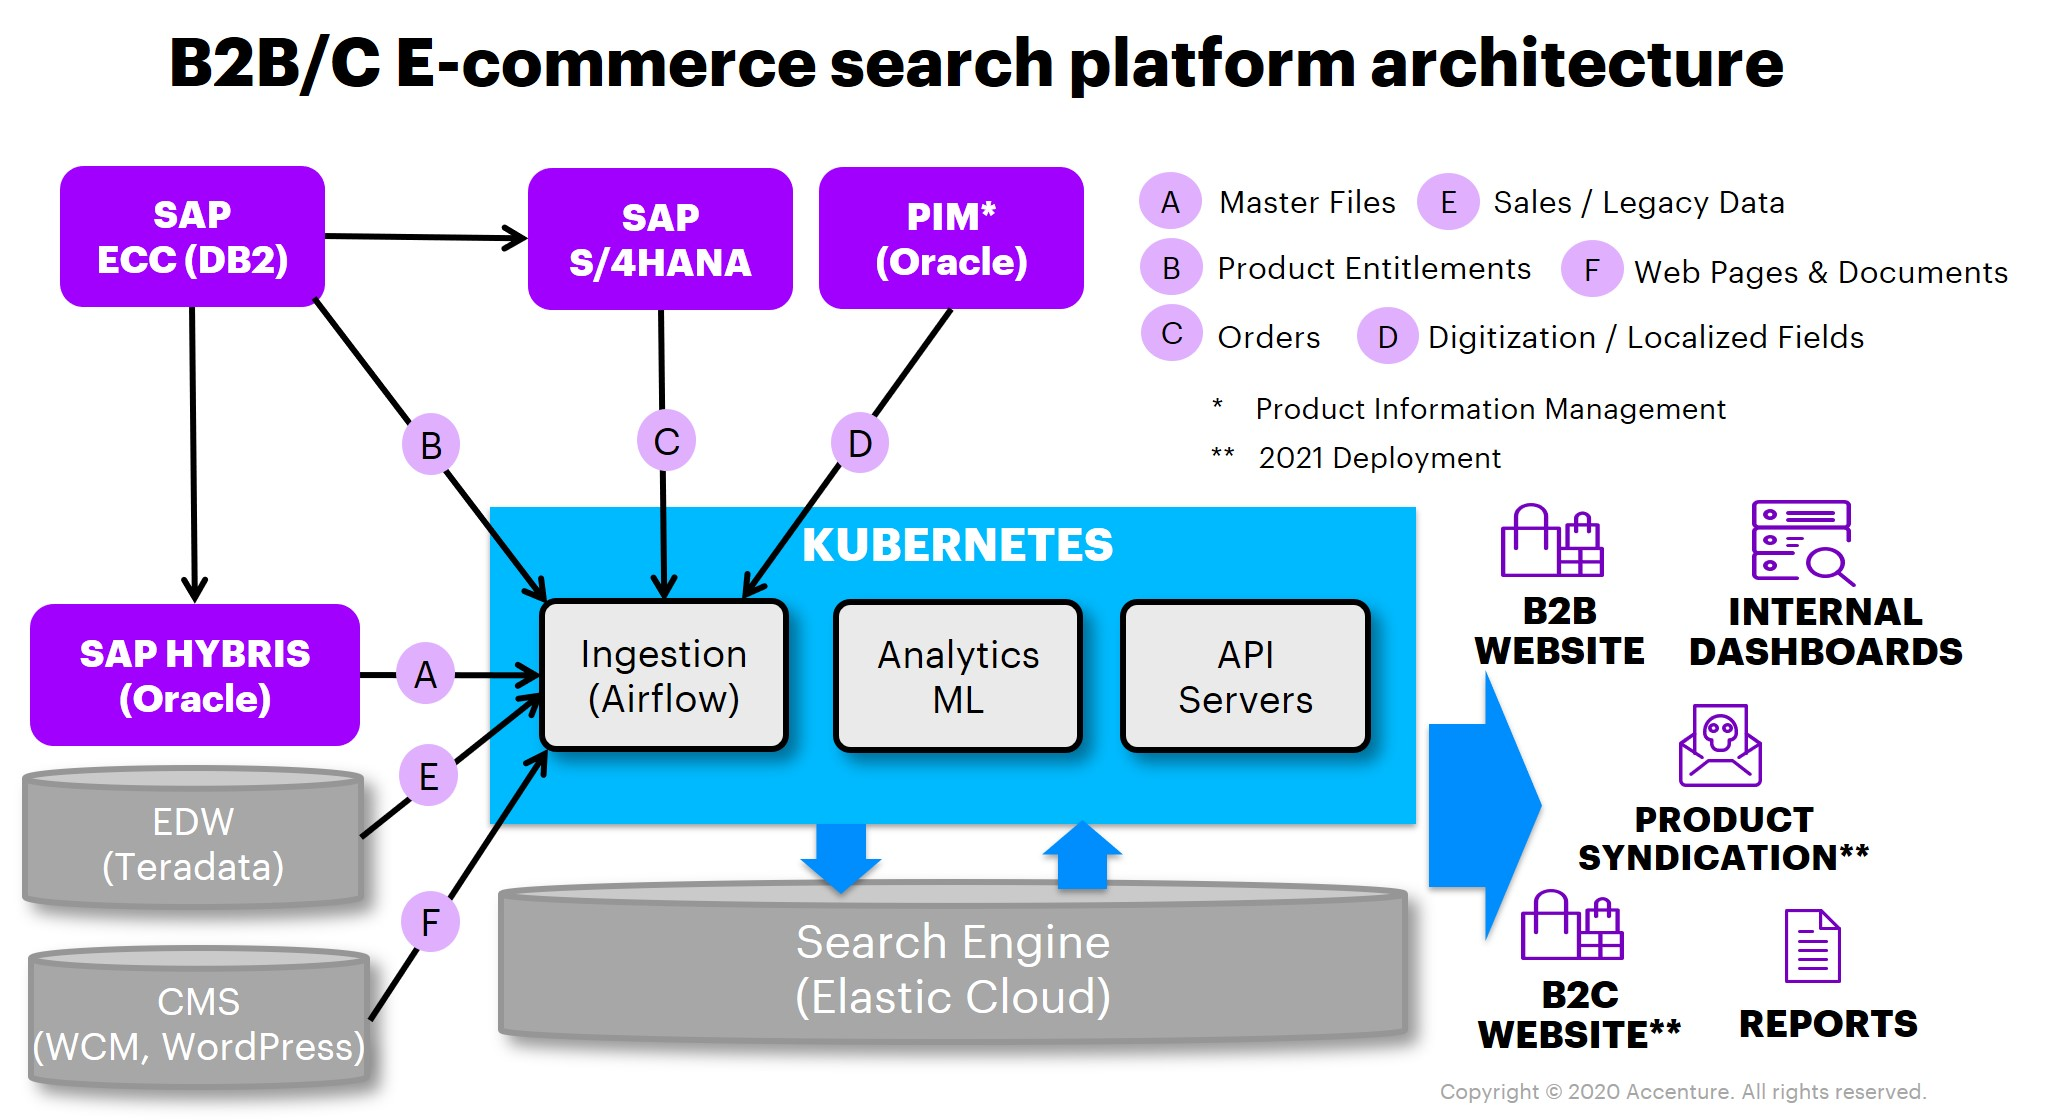 B2B e-commerce search architecture